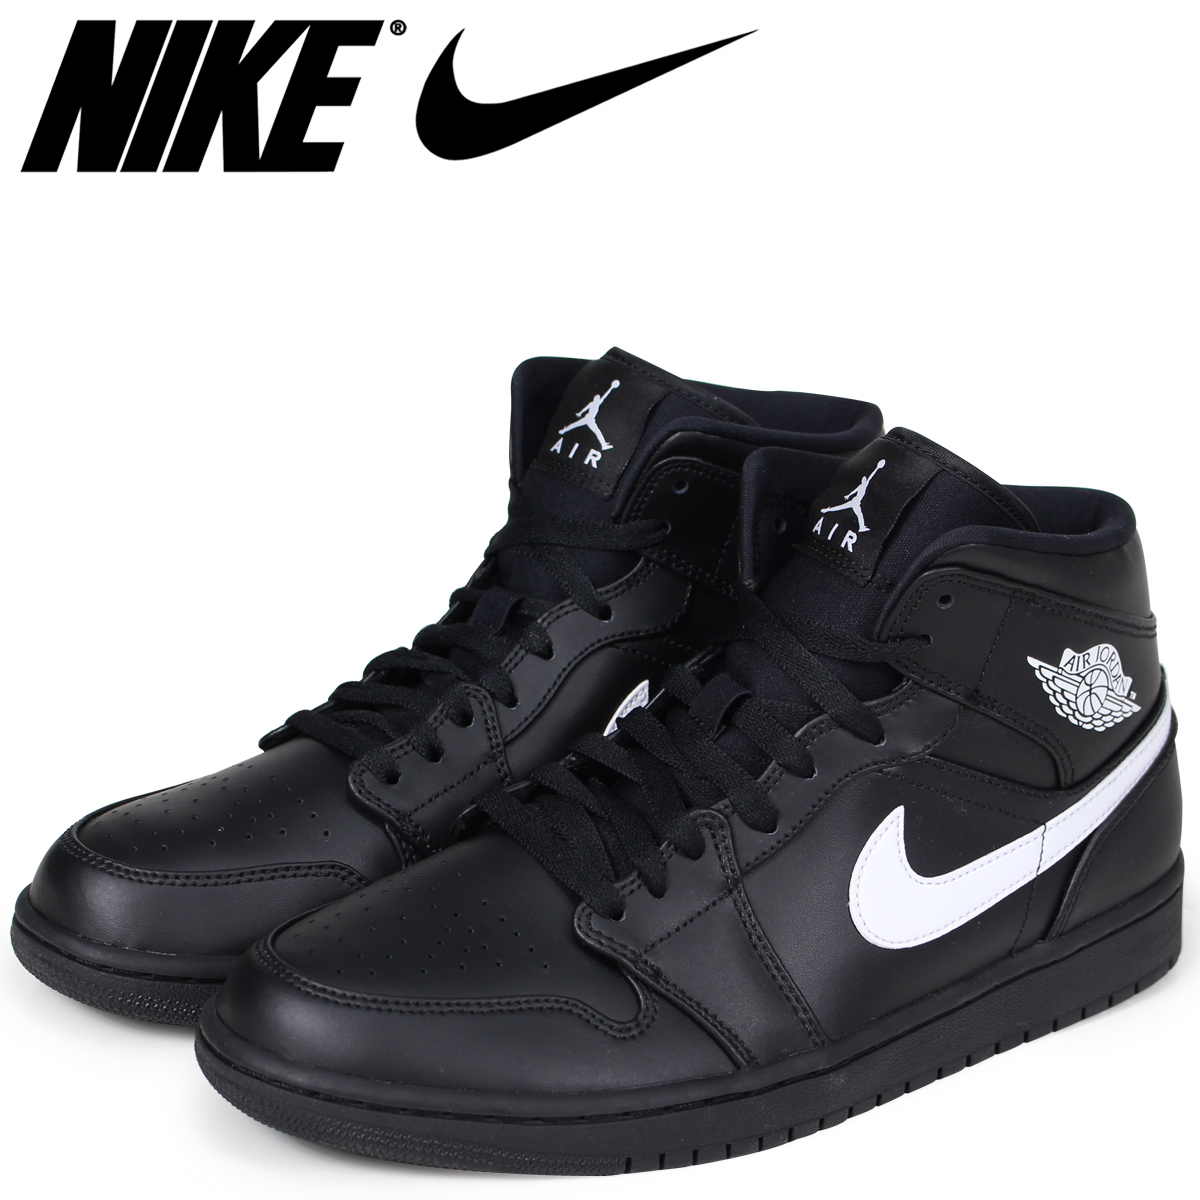 be0b2480c5a0 Sugar Online Shop  NIKE Nike Air Jordan 1 sneakers men AIR JORDAN 1 ...